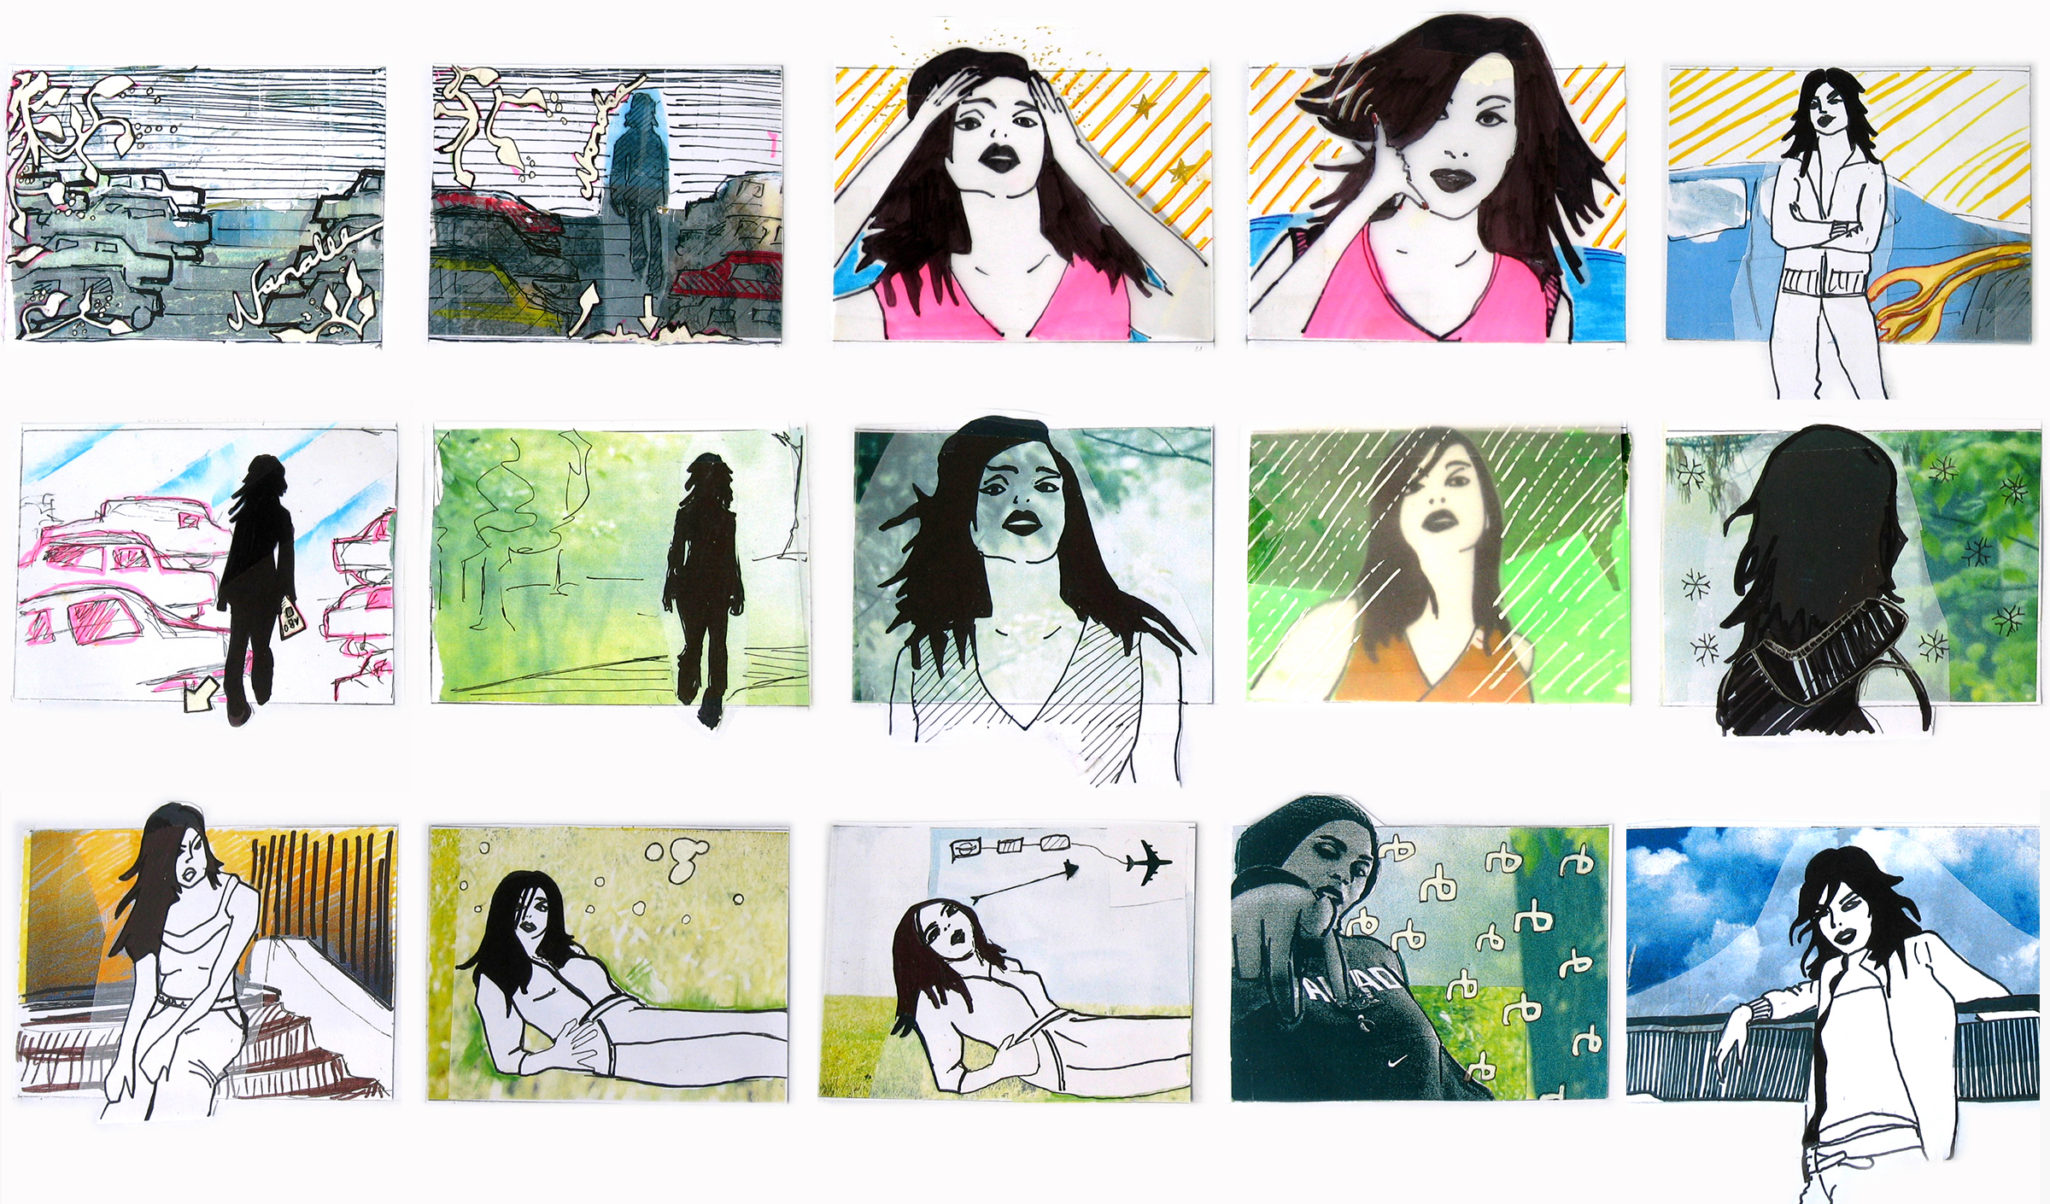 Storyboard: Music video for Nanalee